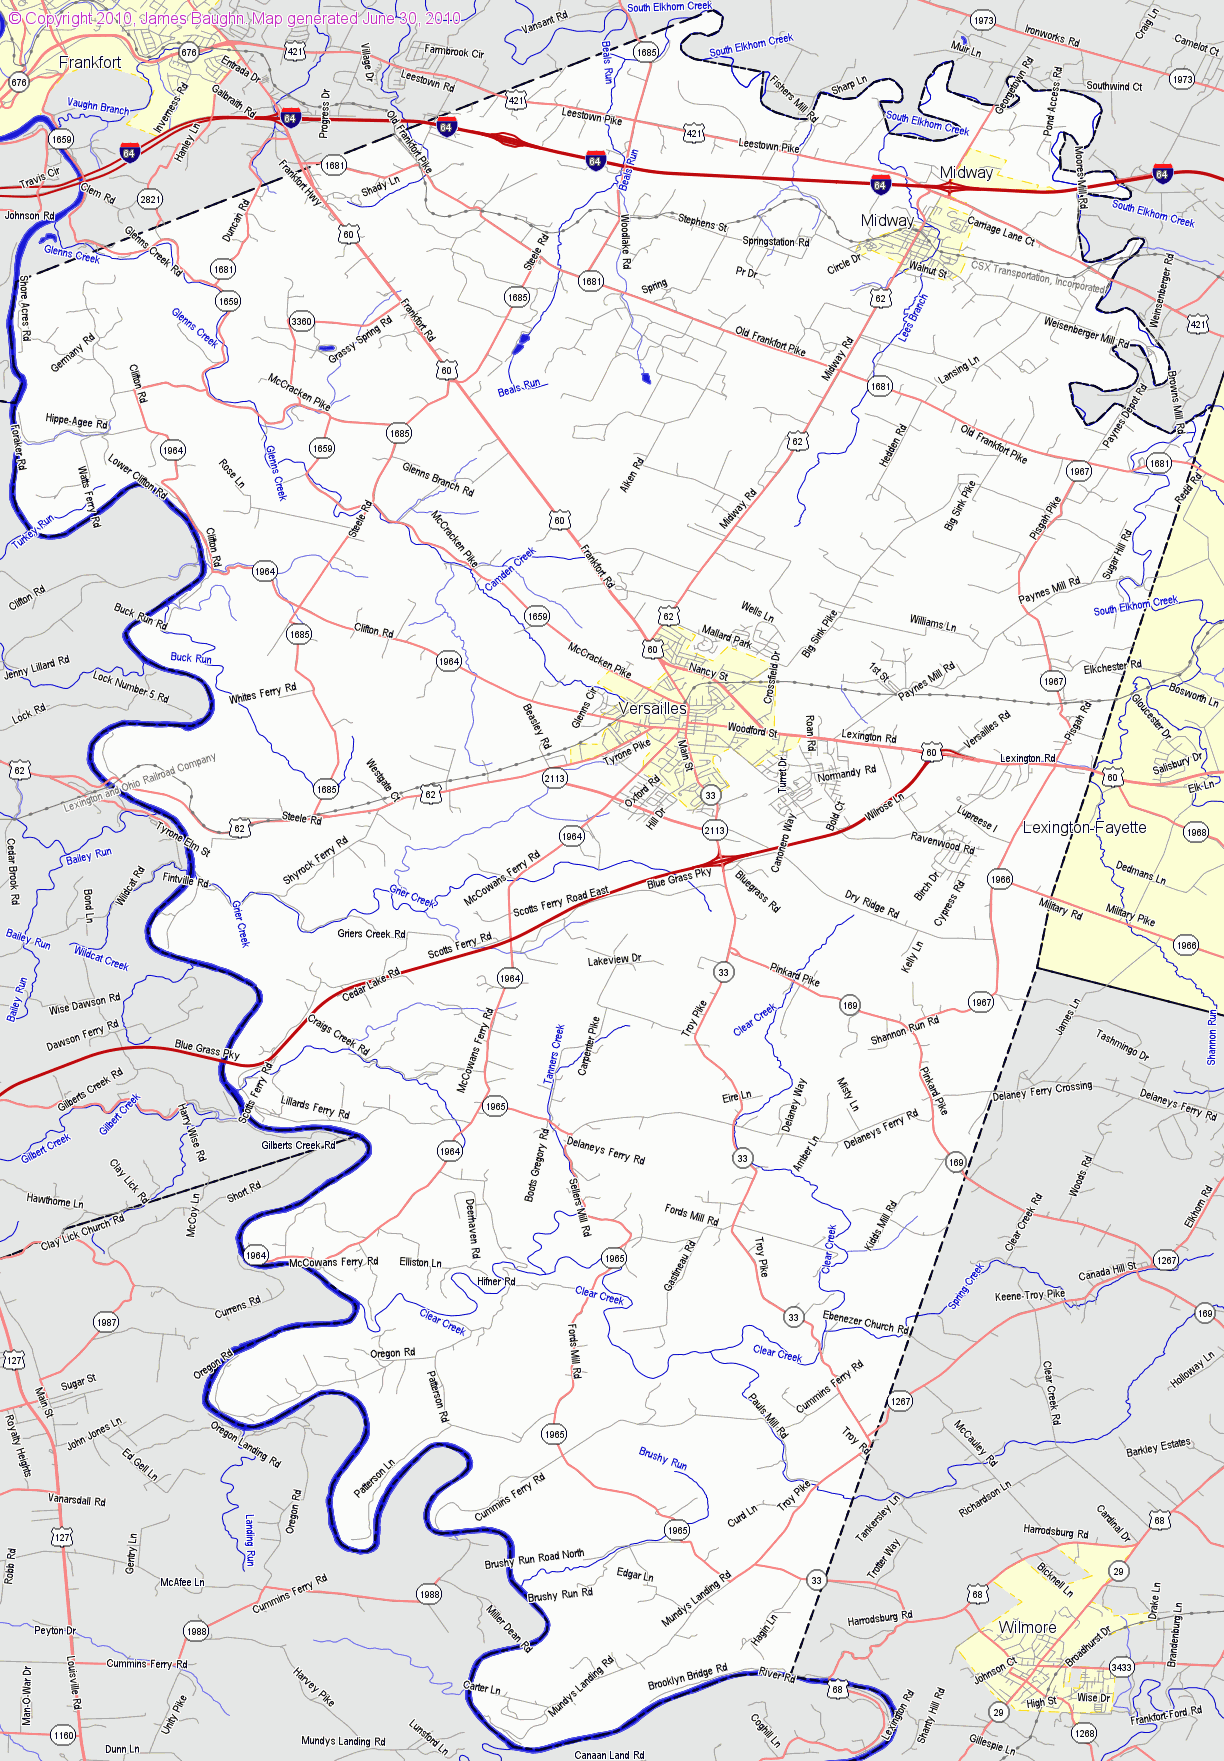 texas county map with roads with Big Map on Usgsmaps further 929009 besides 9 Of The Worlds Most Amazing Wind Farms additionally Cycling Fm2147e And County Roads To The Narrows And Back 30 Miles Of Hot furthermore Precinct 1.